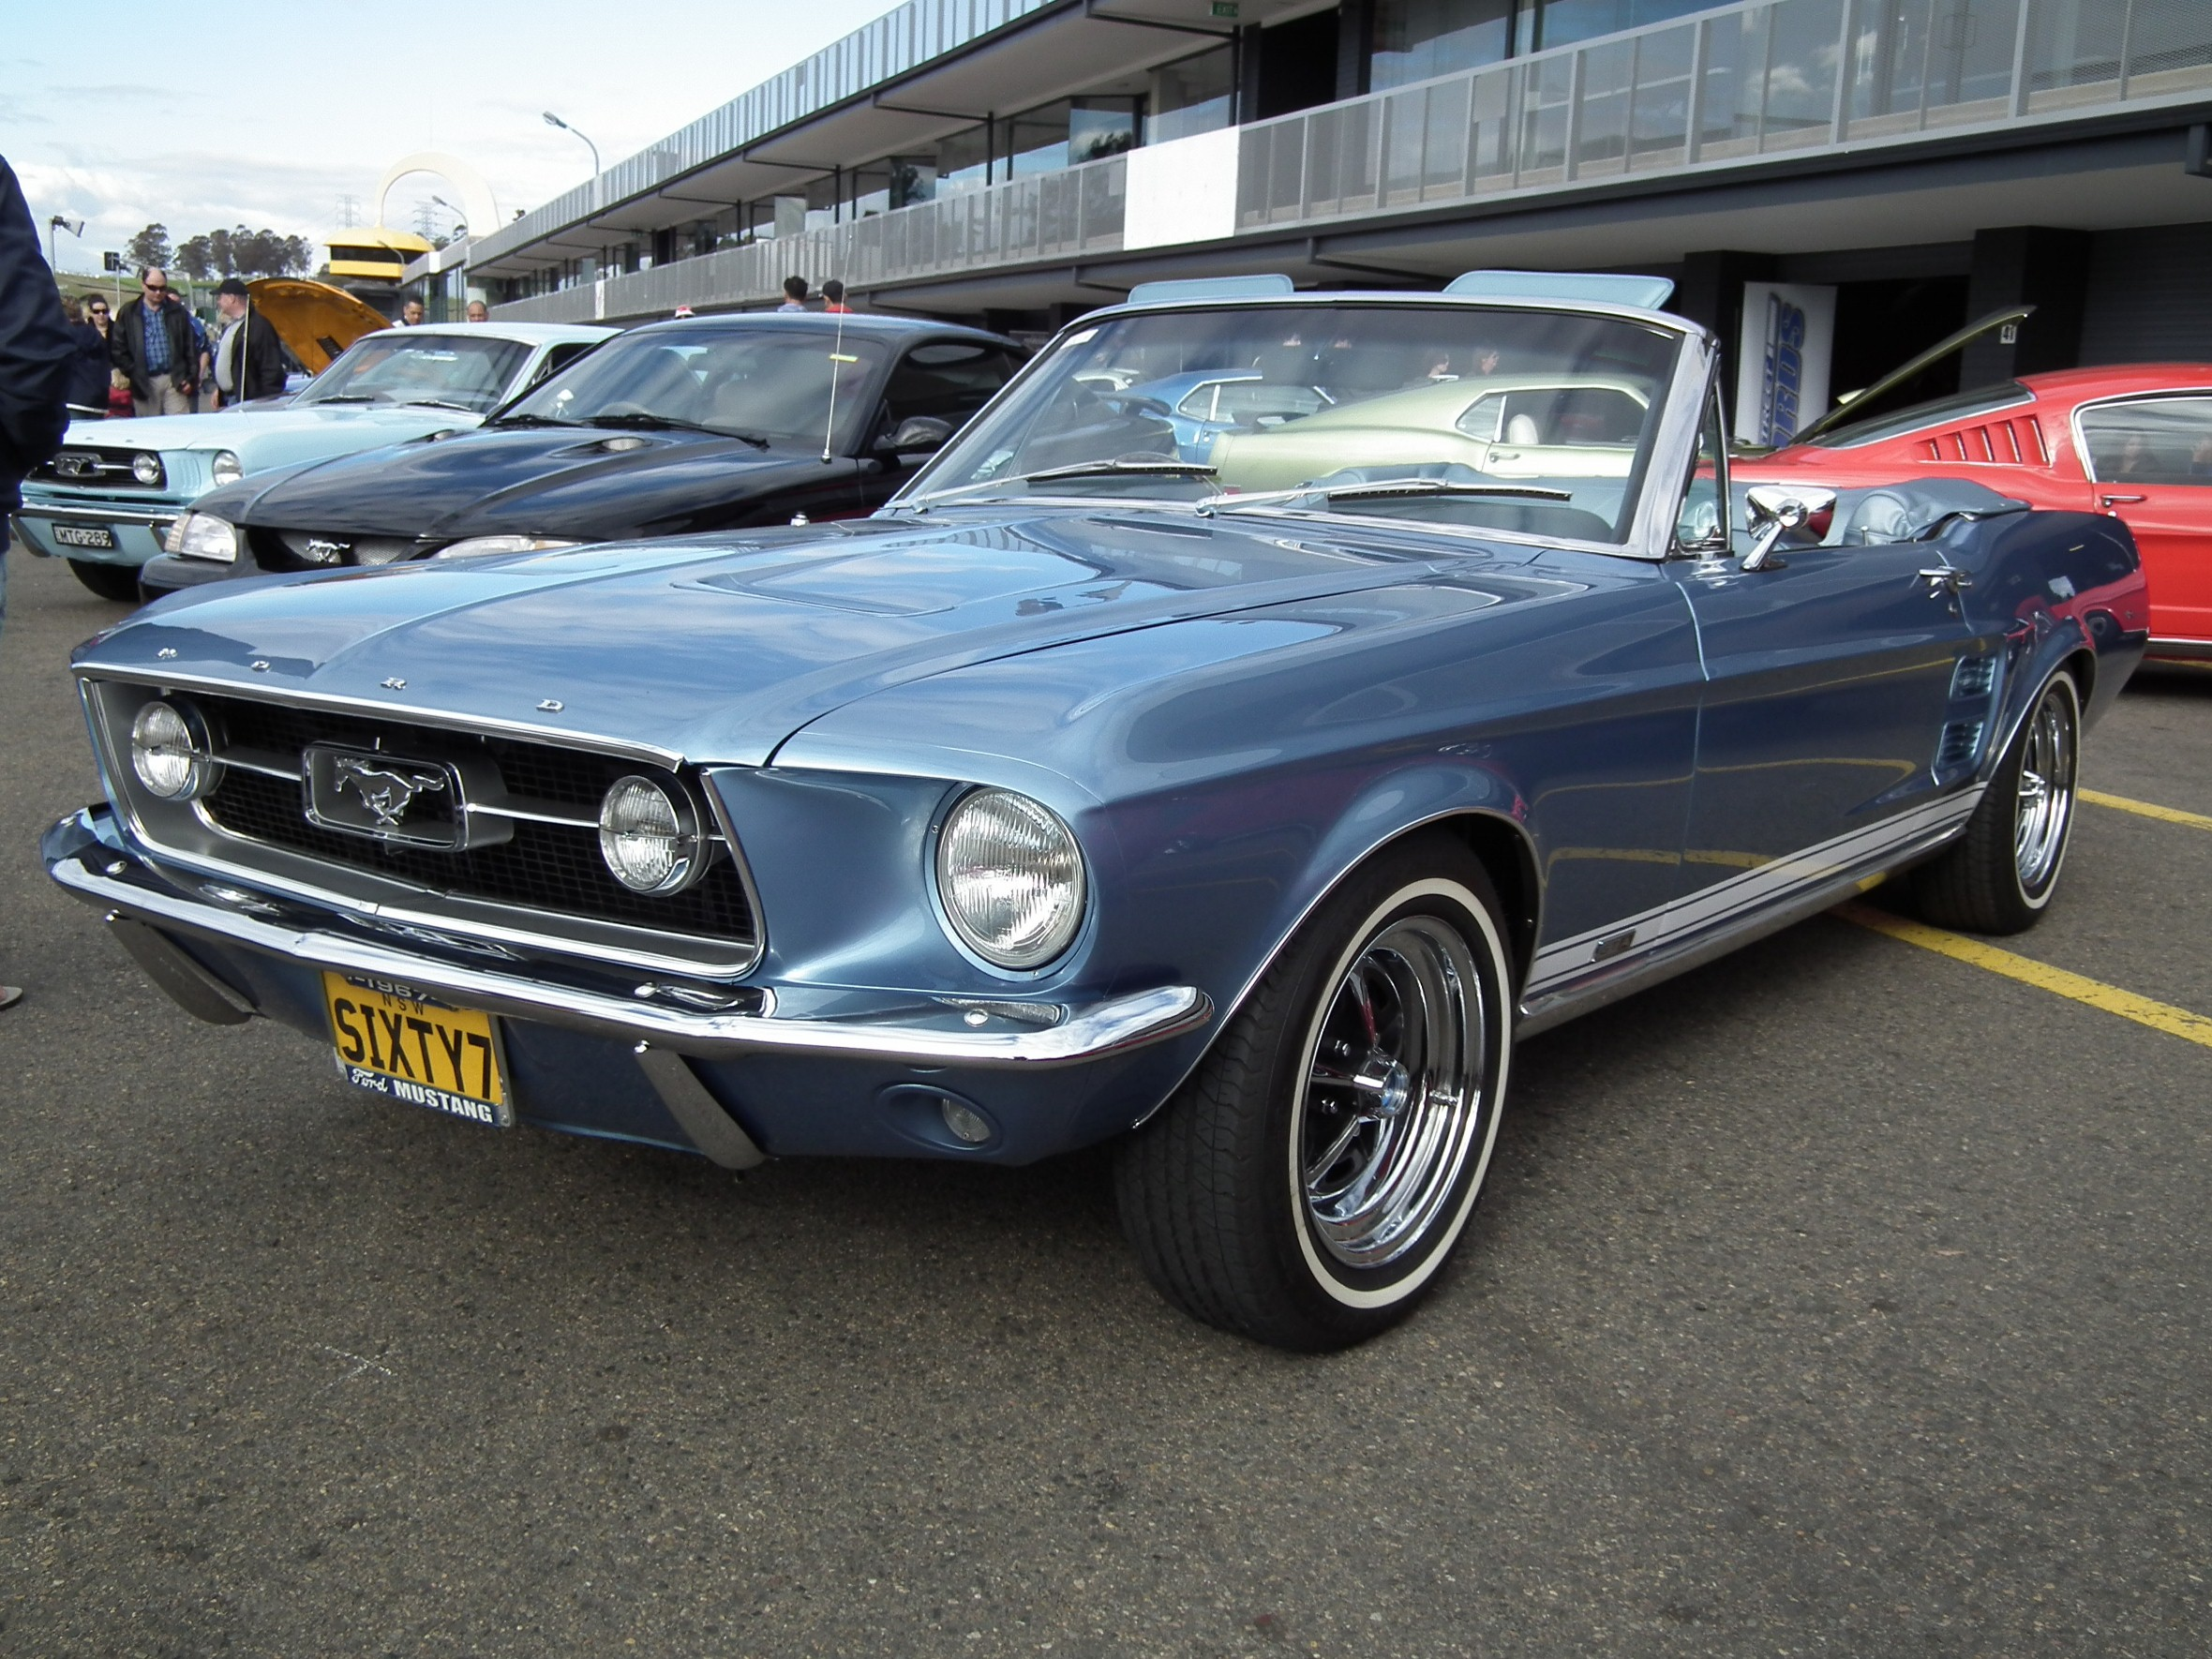 Image result for Classic Ford Mustang